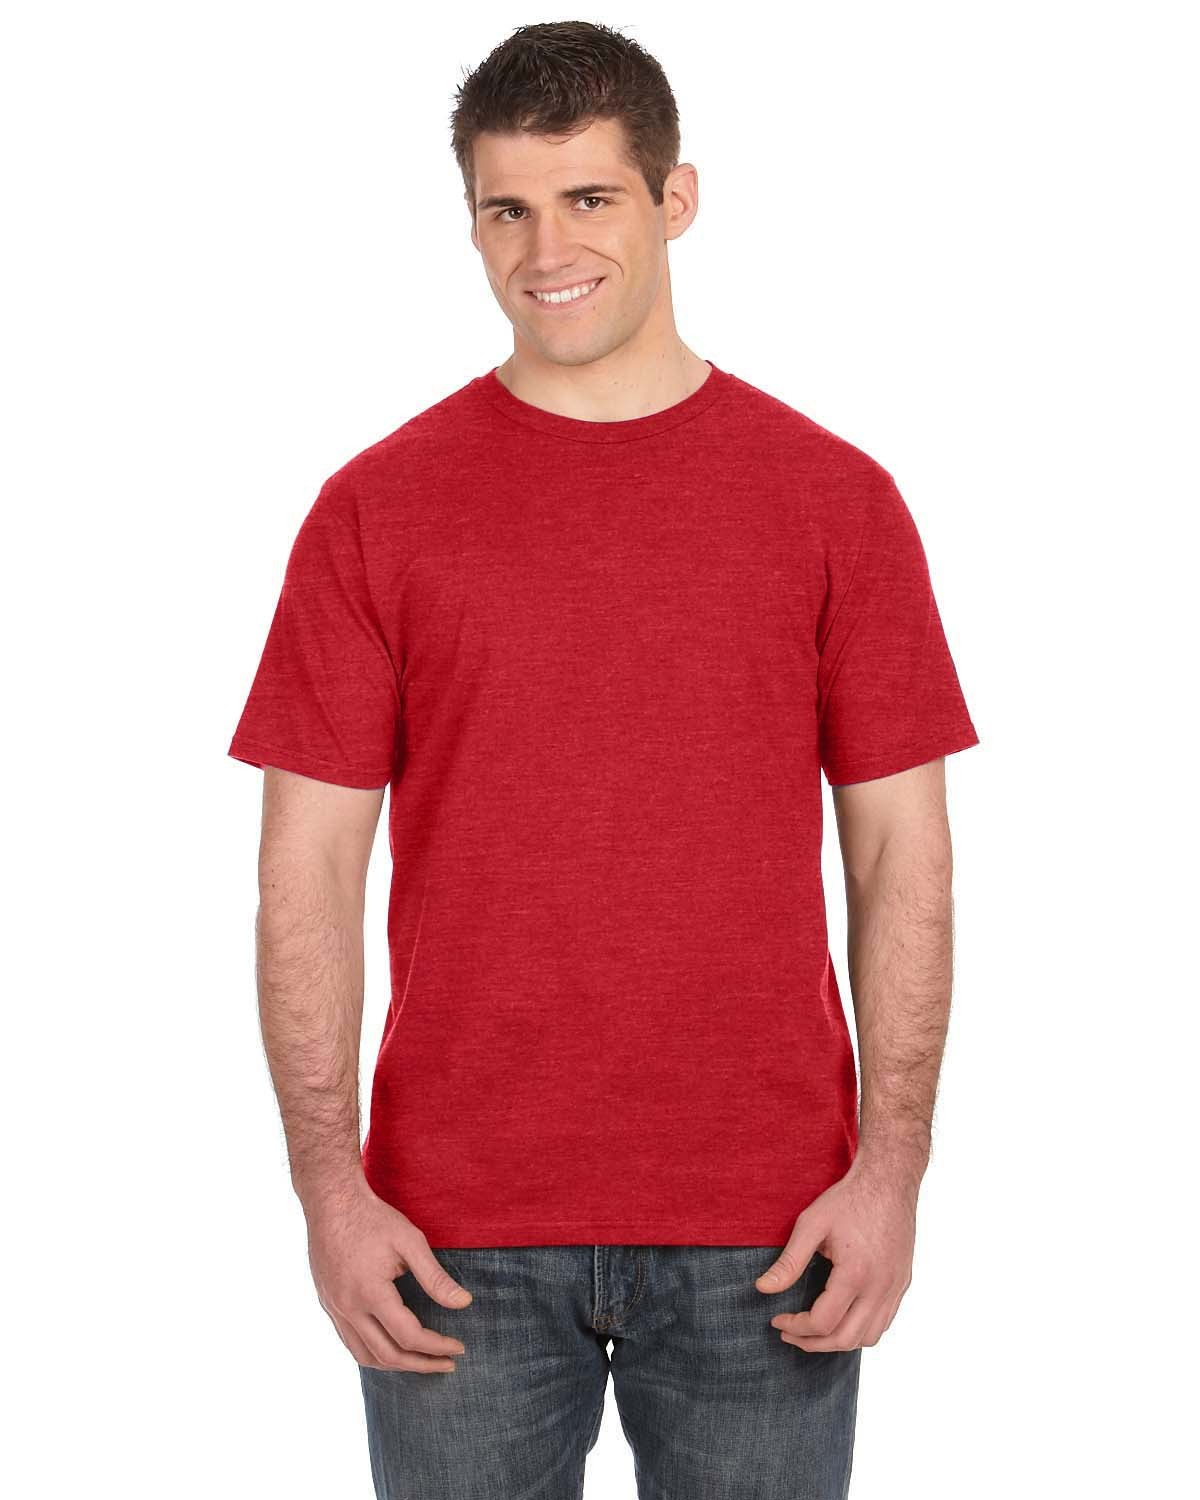 980 Anvil HEATHER RED